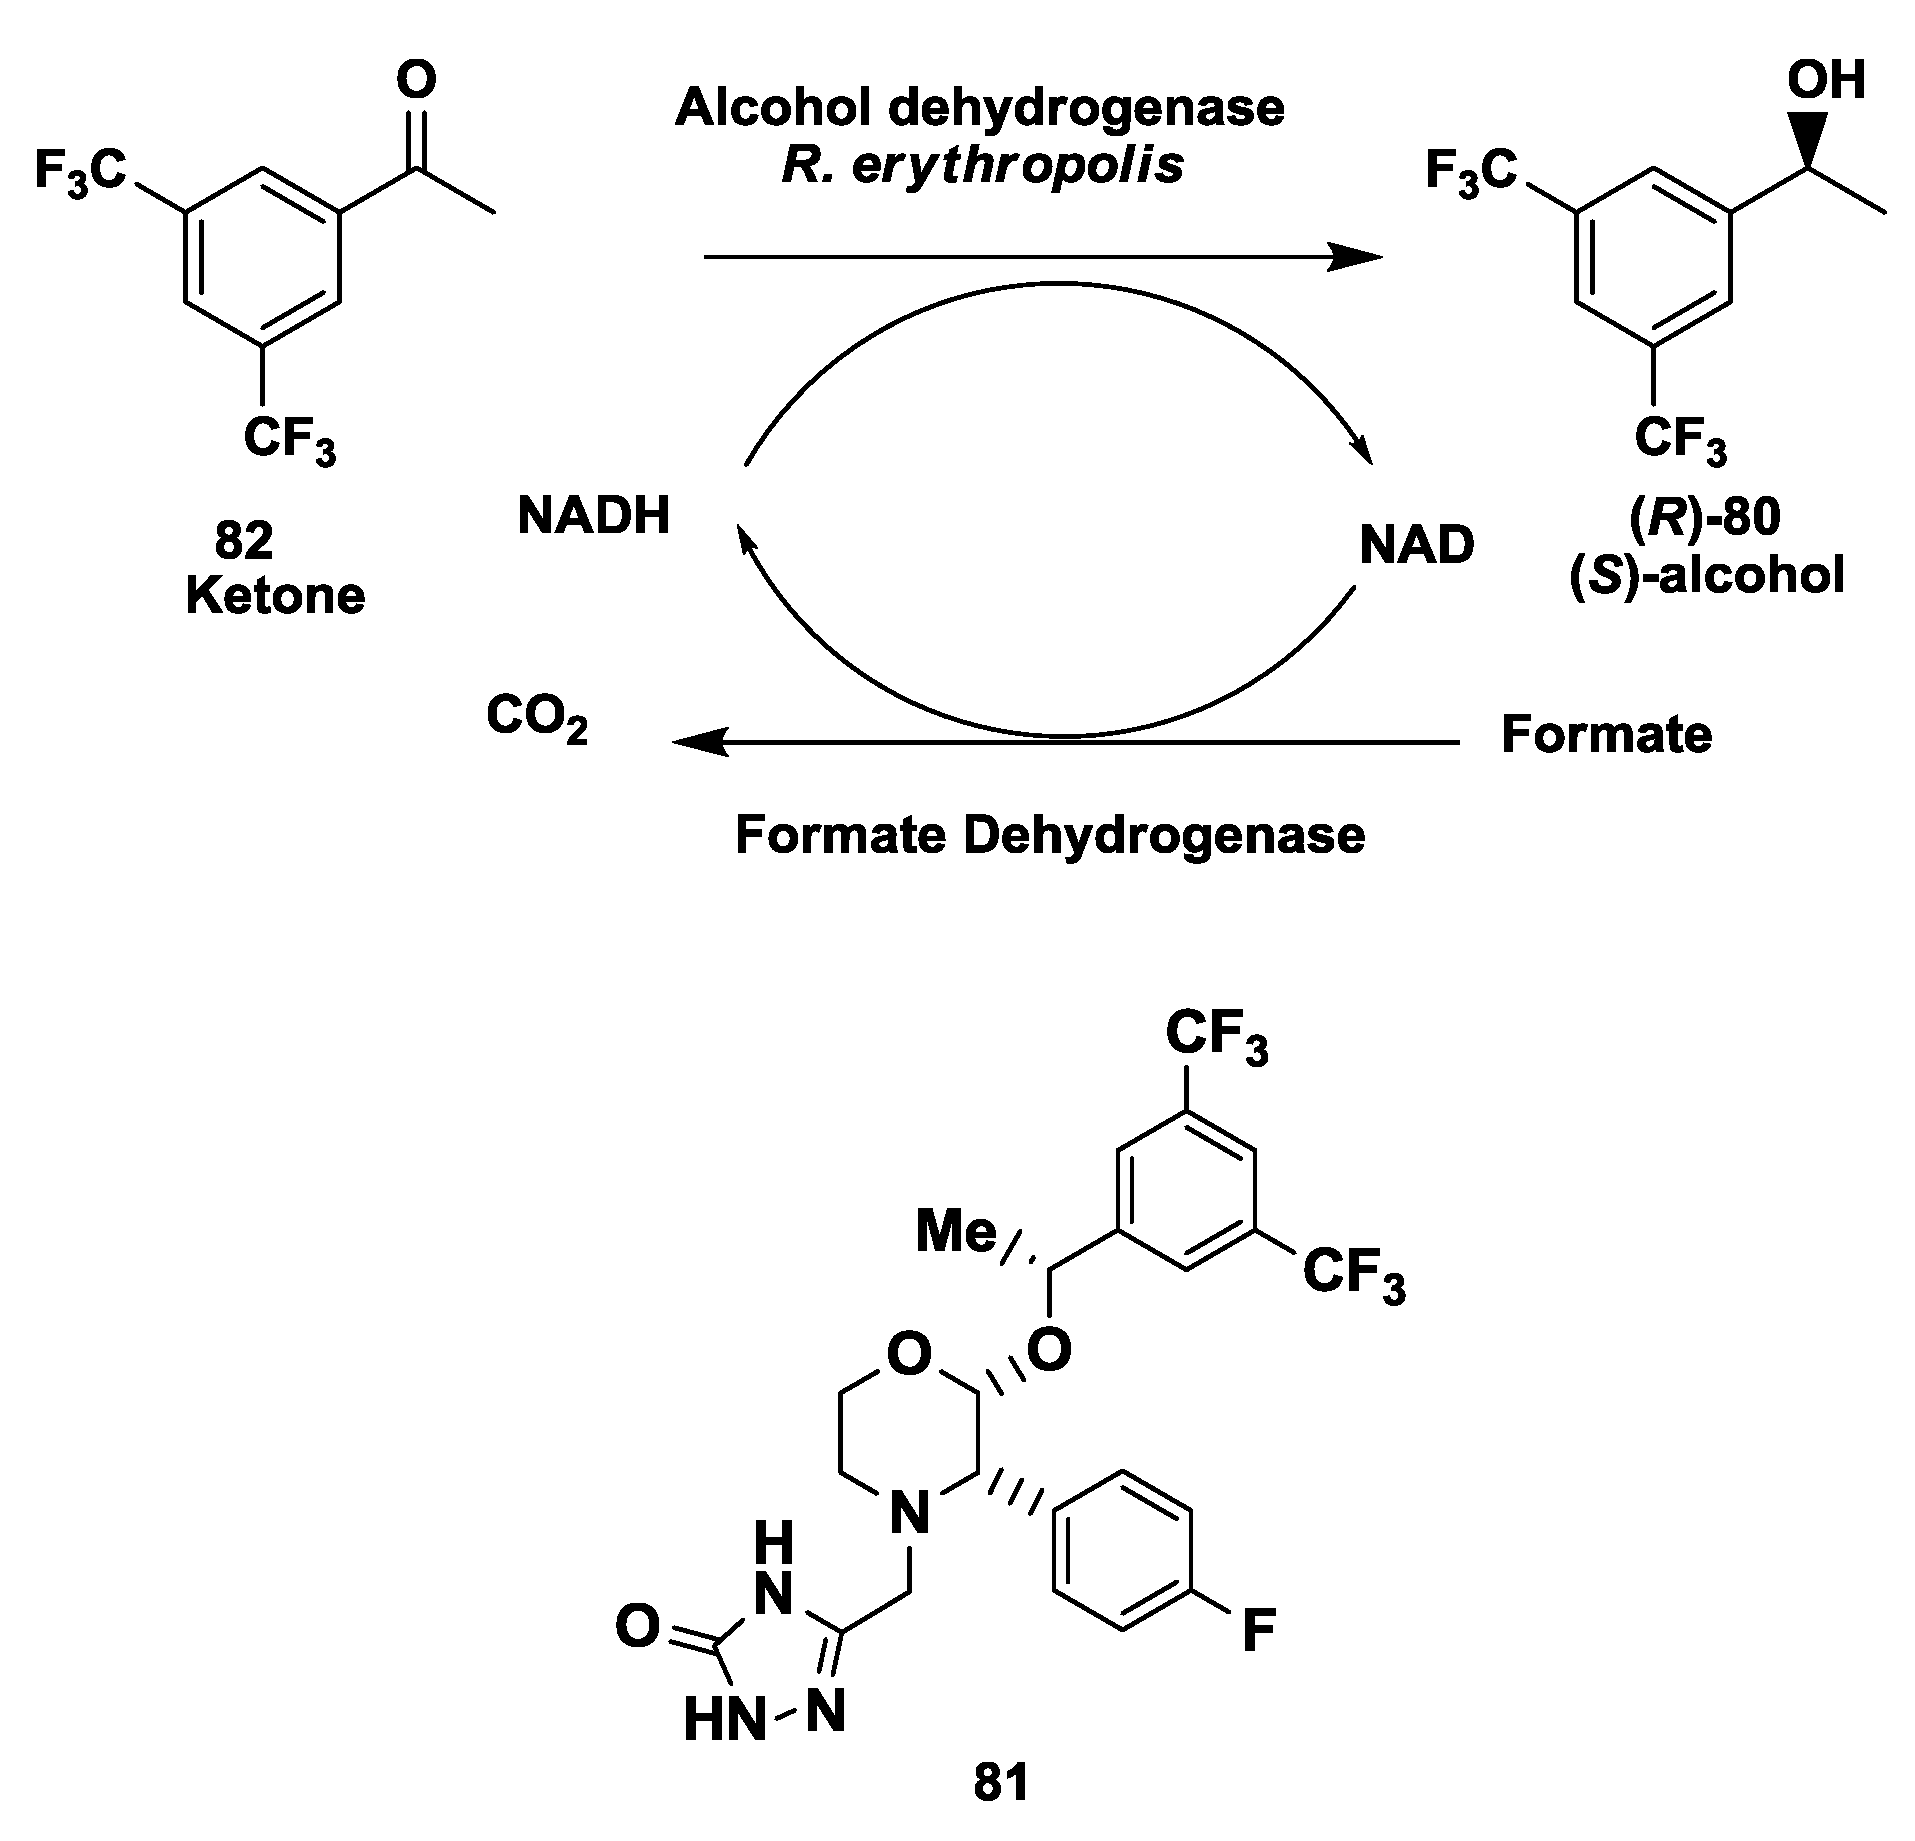 Of chiral alcohols and amino acids for development of pharmaceuticals